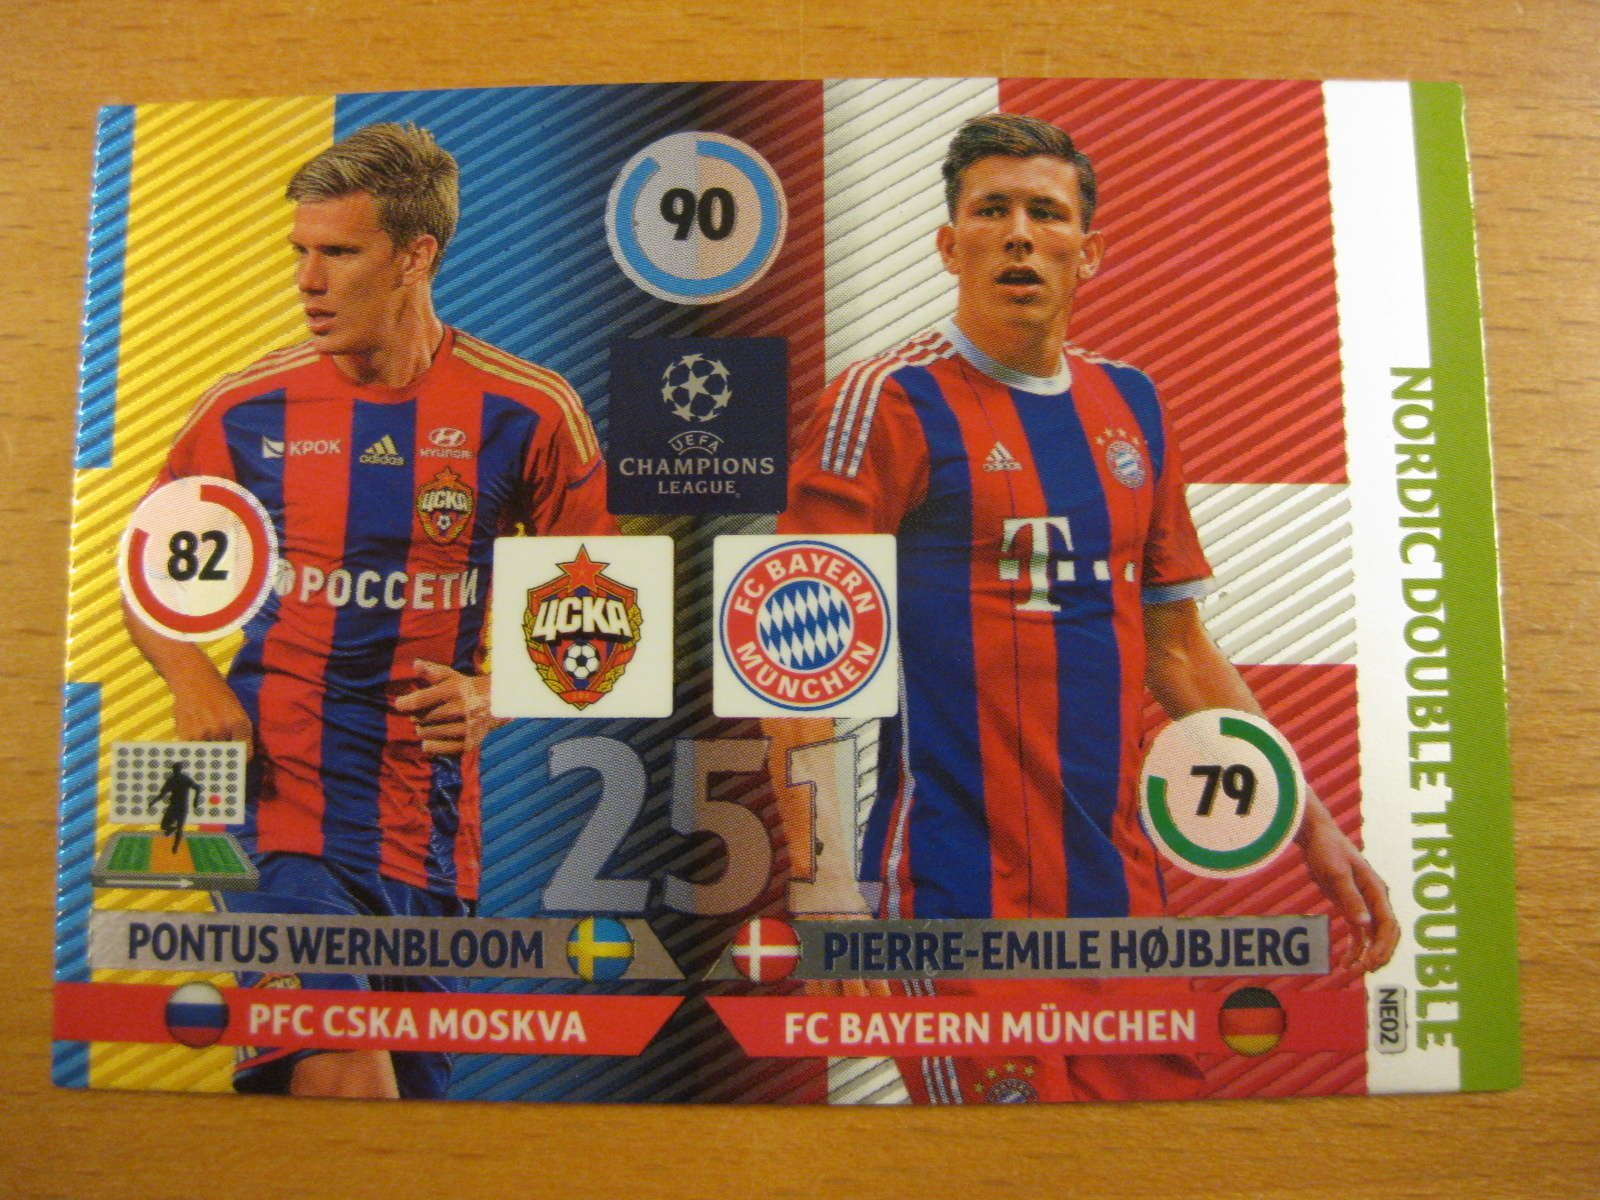 NORDIC DOUBLE TROUBLE -  WERNBLOOM / HÖJBJERG - CL 2014-15